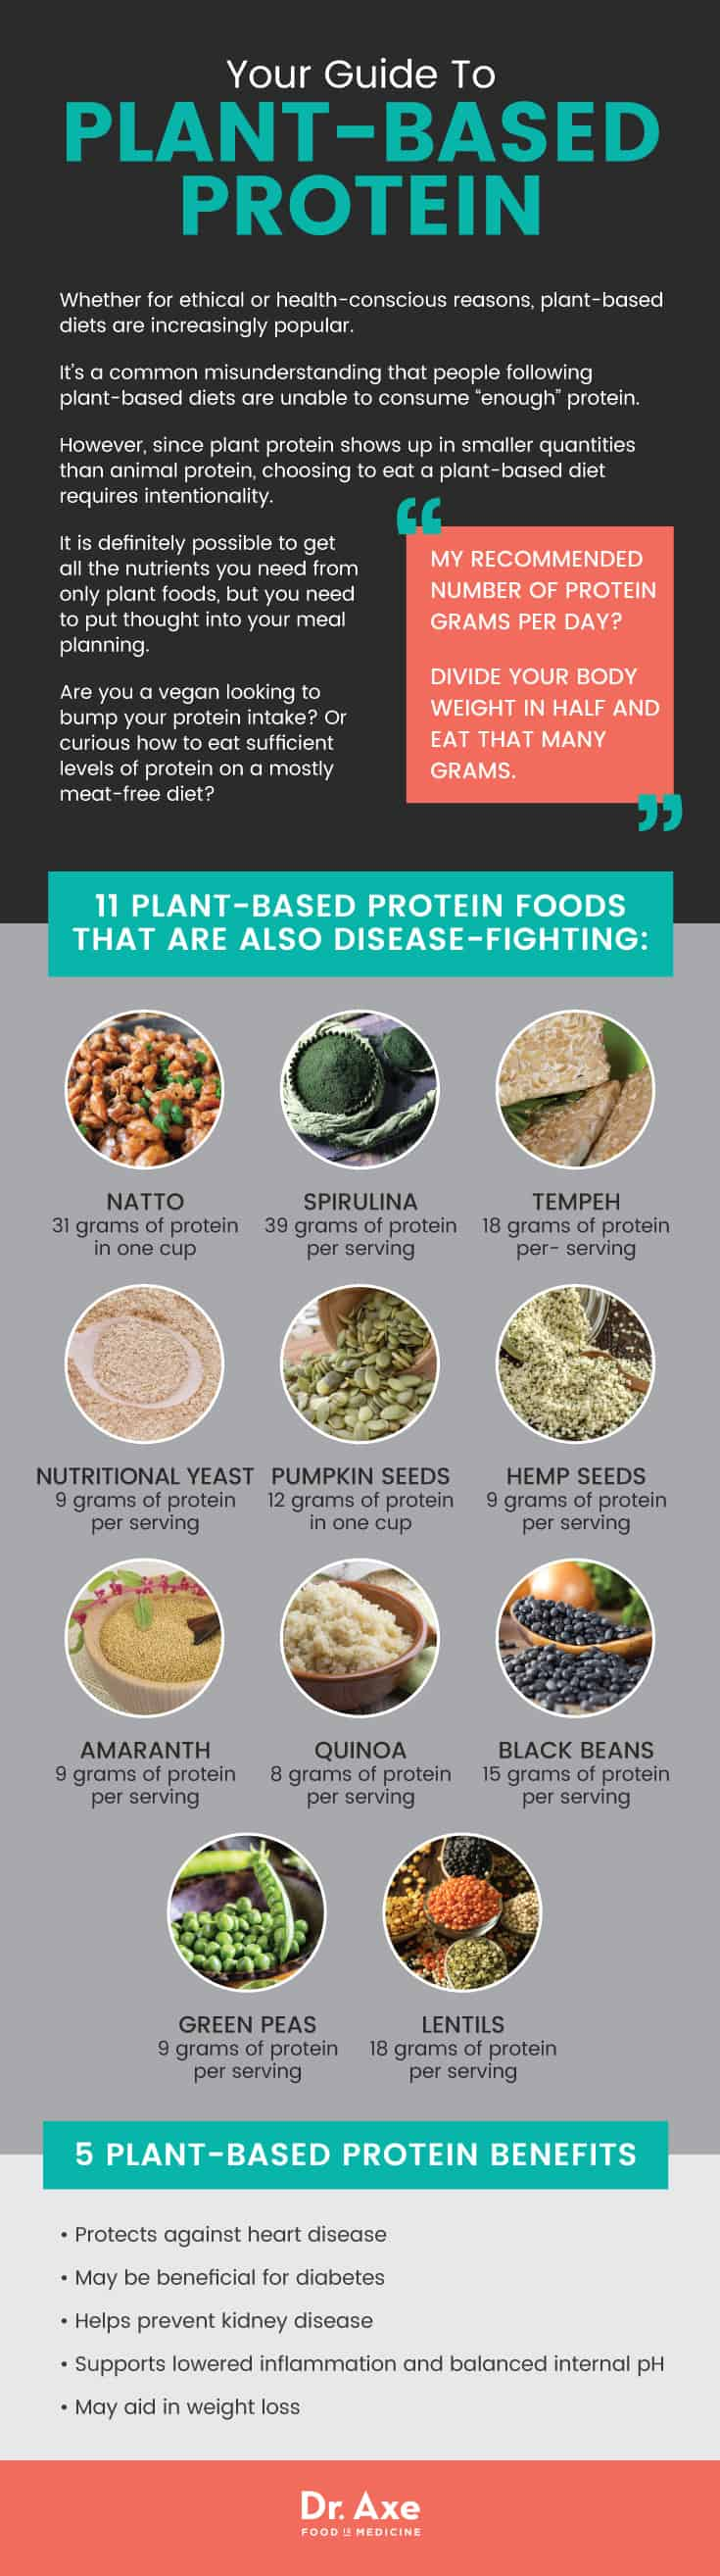 Plant-based protein guide - Dr. Axe